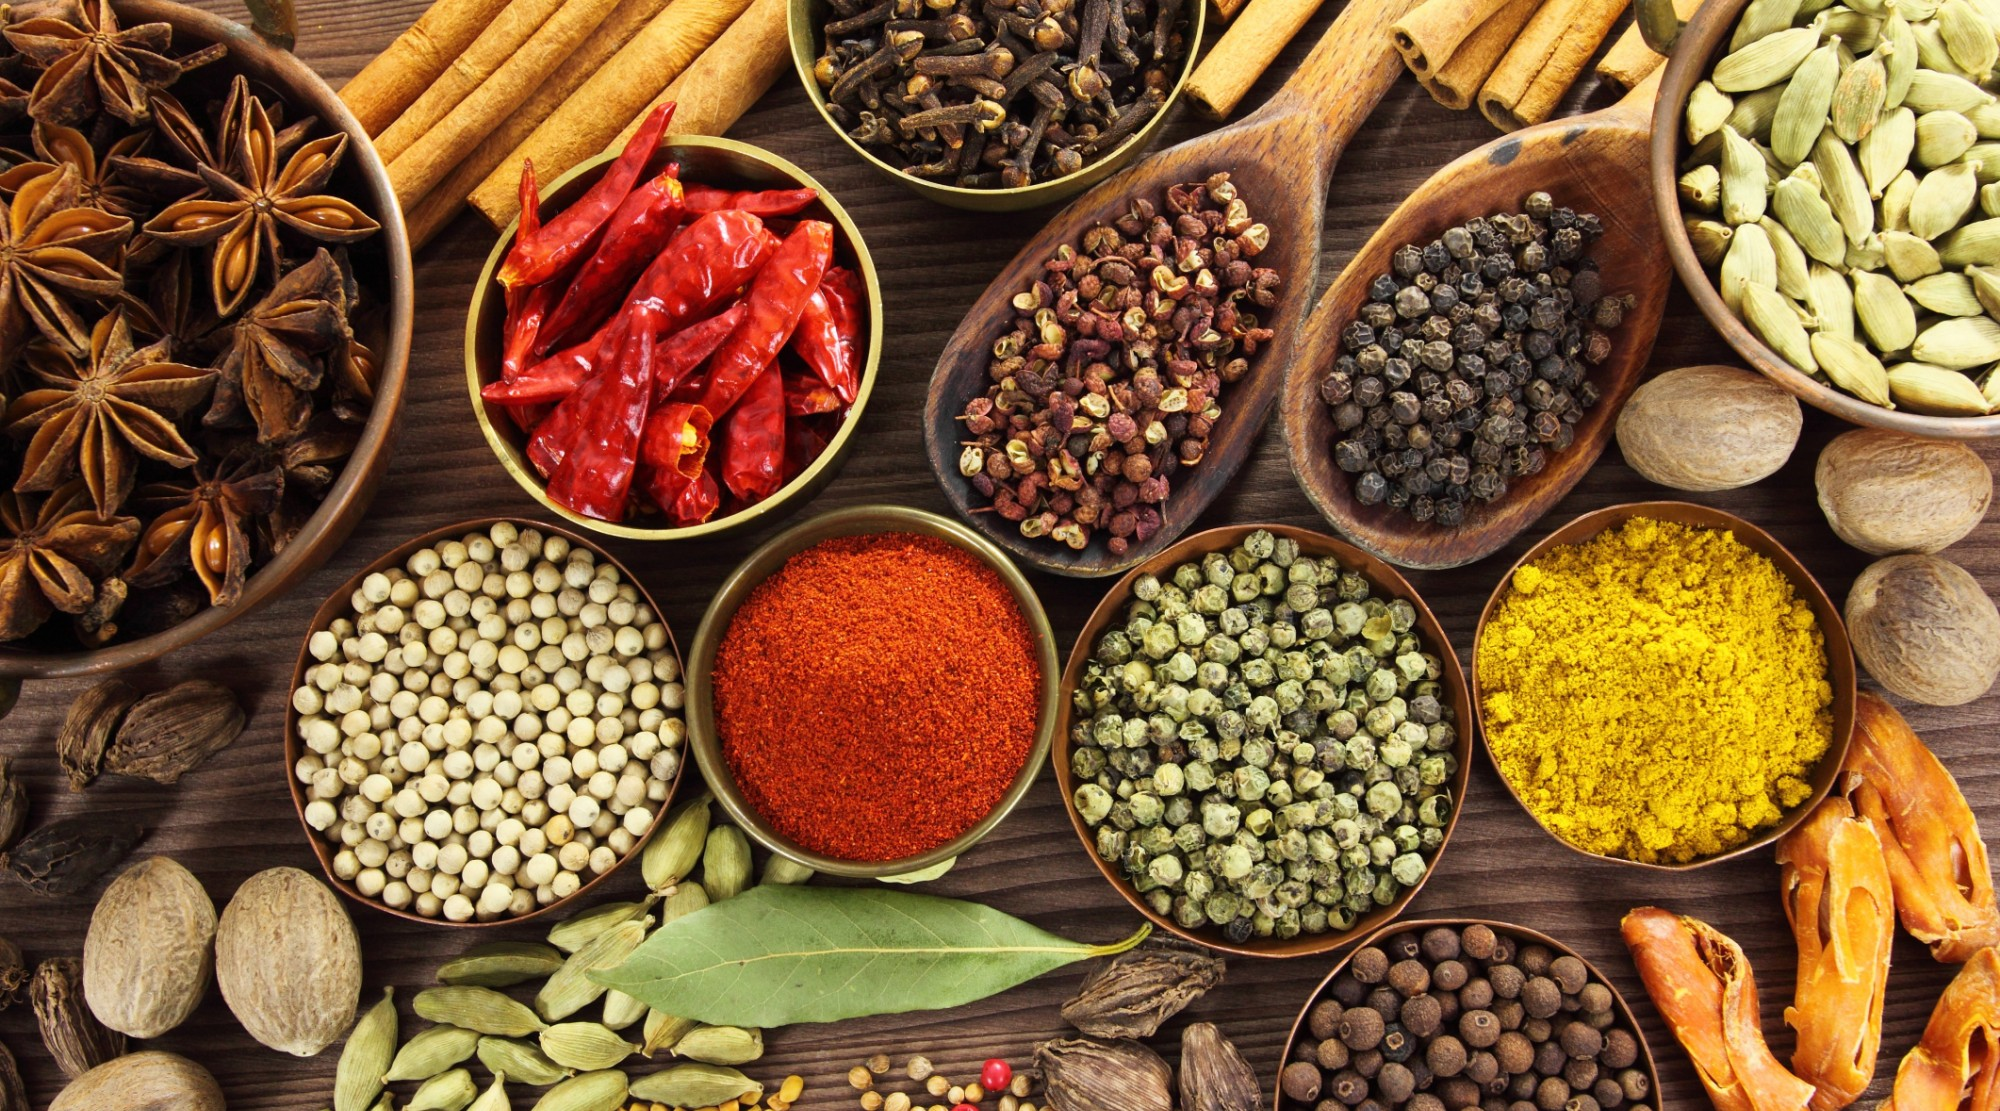 Must Have Culinary Spices For Duplicating The World's Cuisines